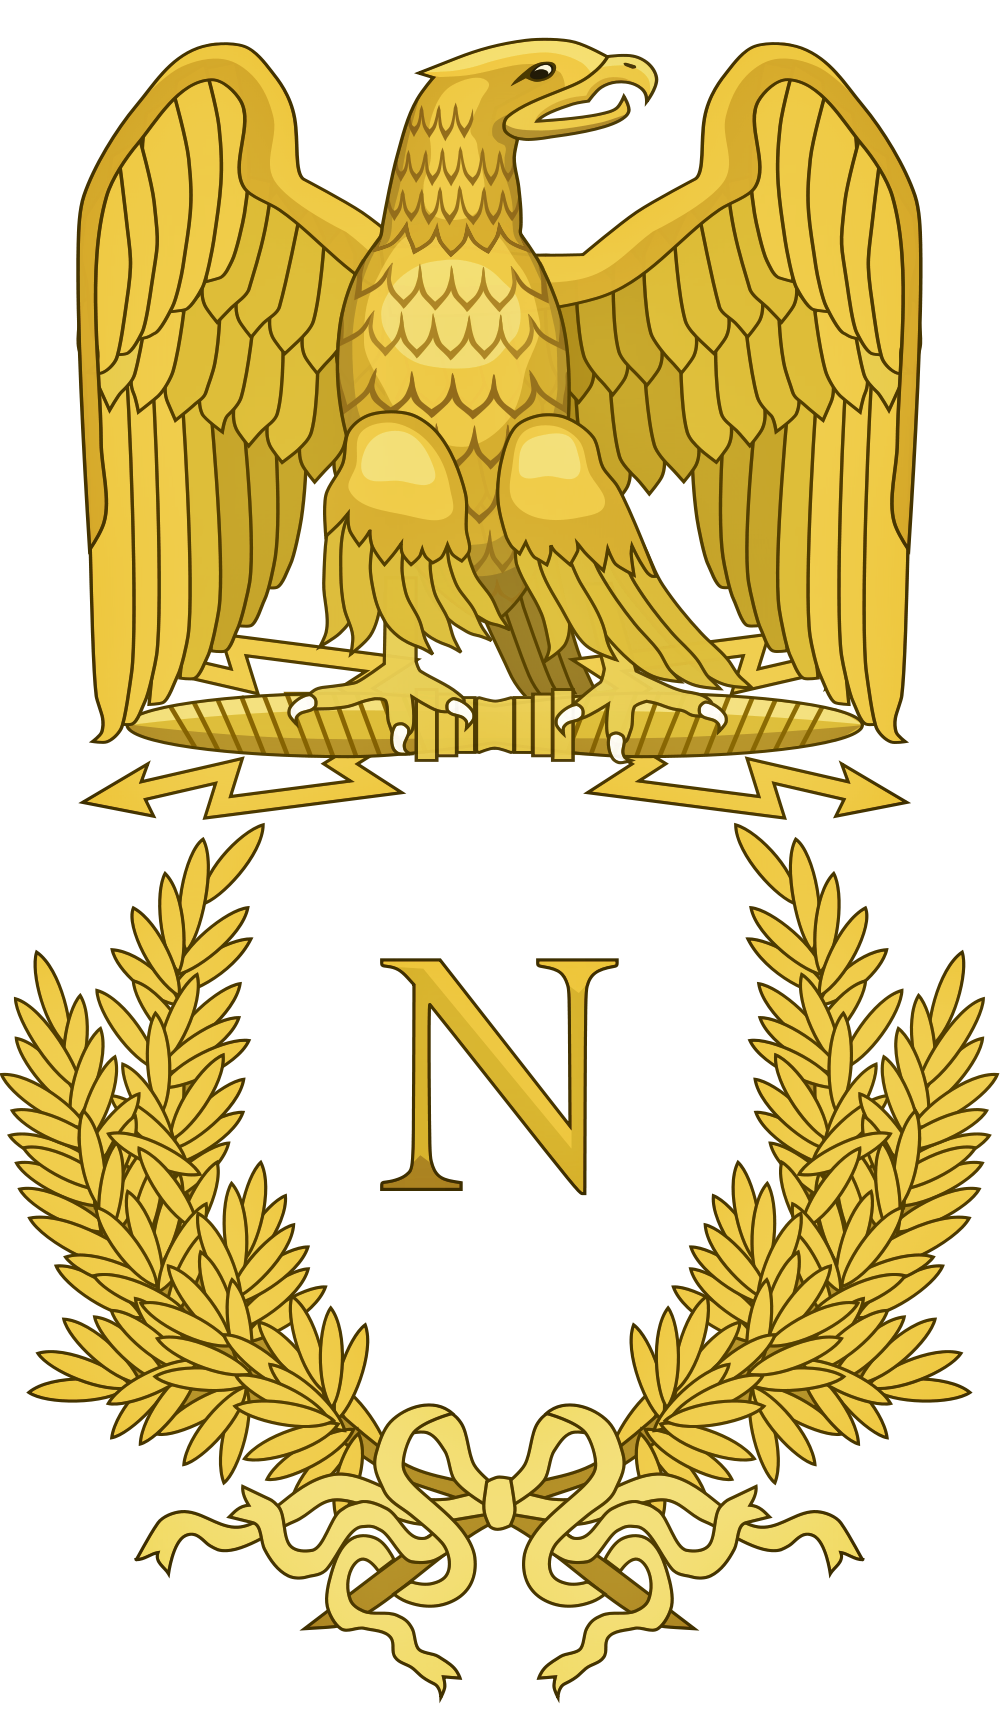 file napoleon bonaparte logo png wikimedia commons crest vector and meaning crest vector and meaning